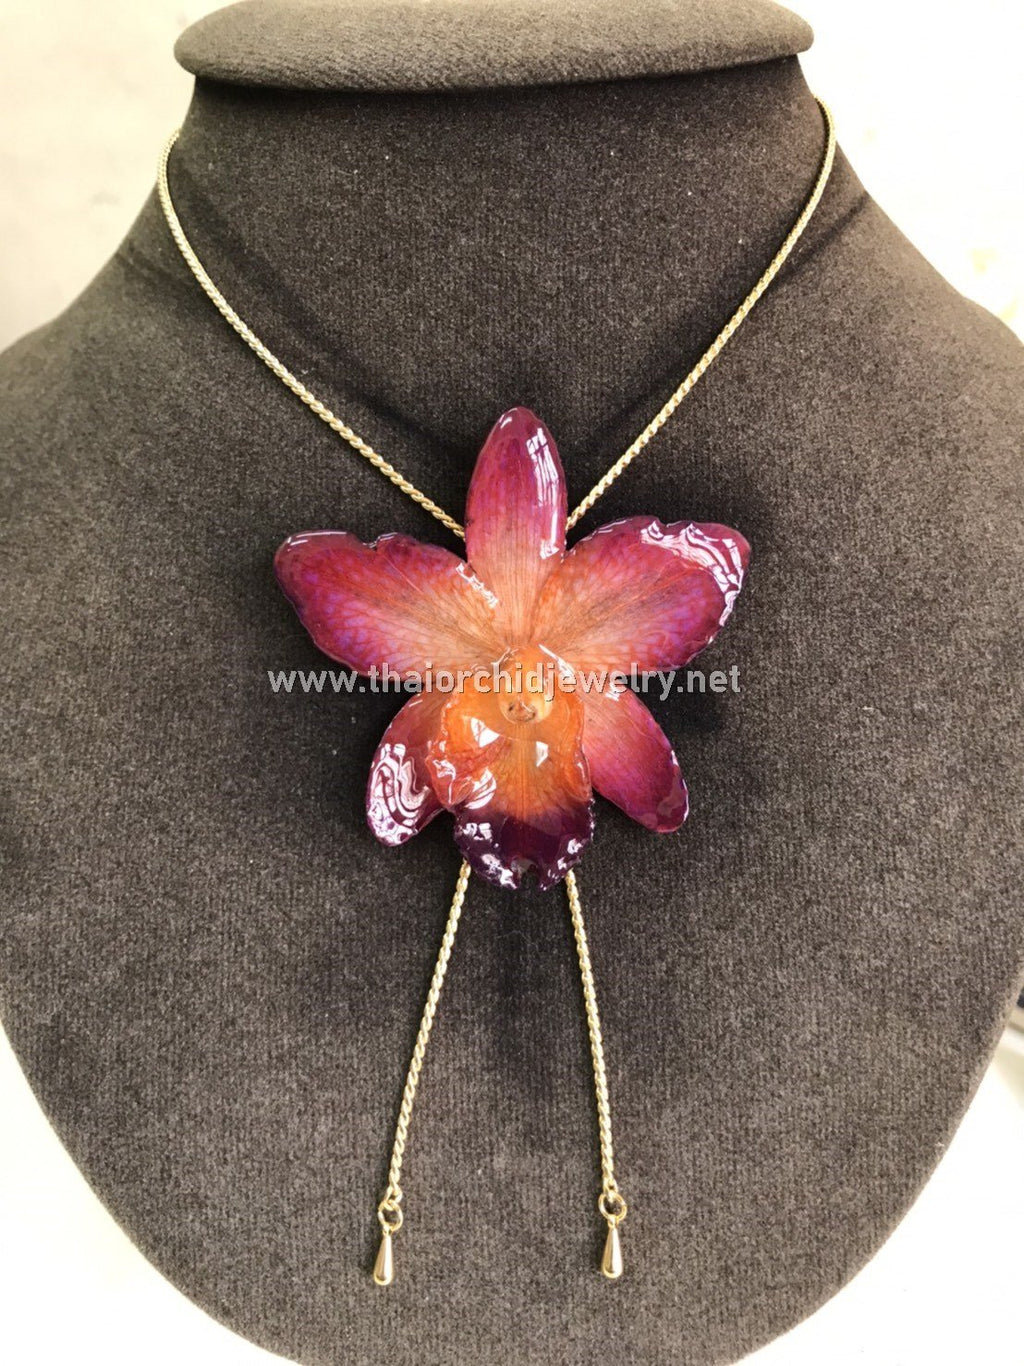 Cattleya Orchid Jewelry Slider Necklace Gold Plated 24K - Pink Sassy Orange